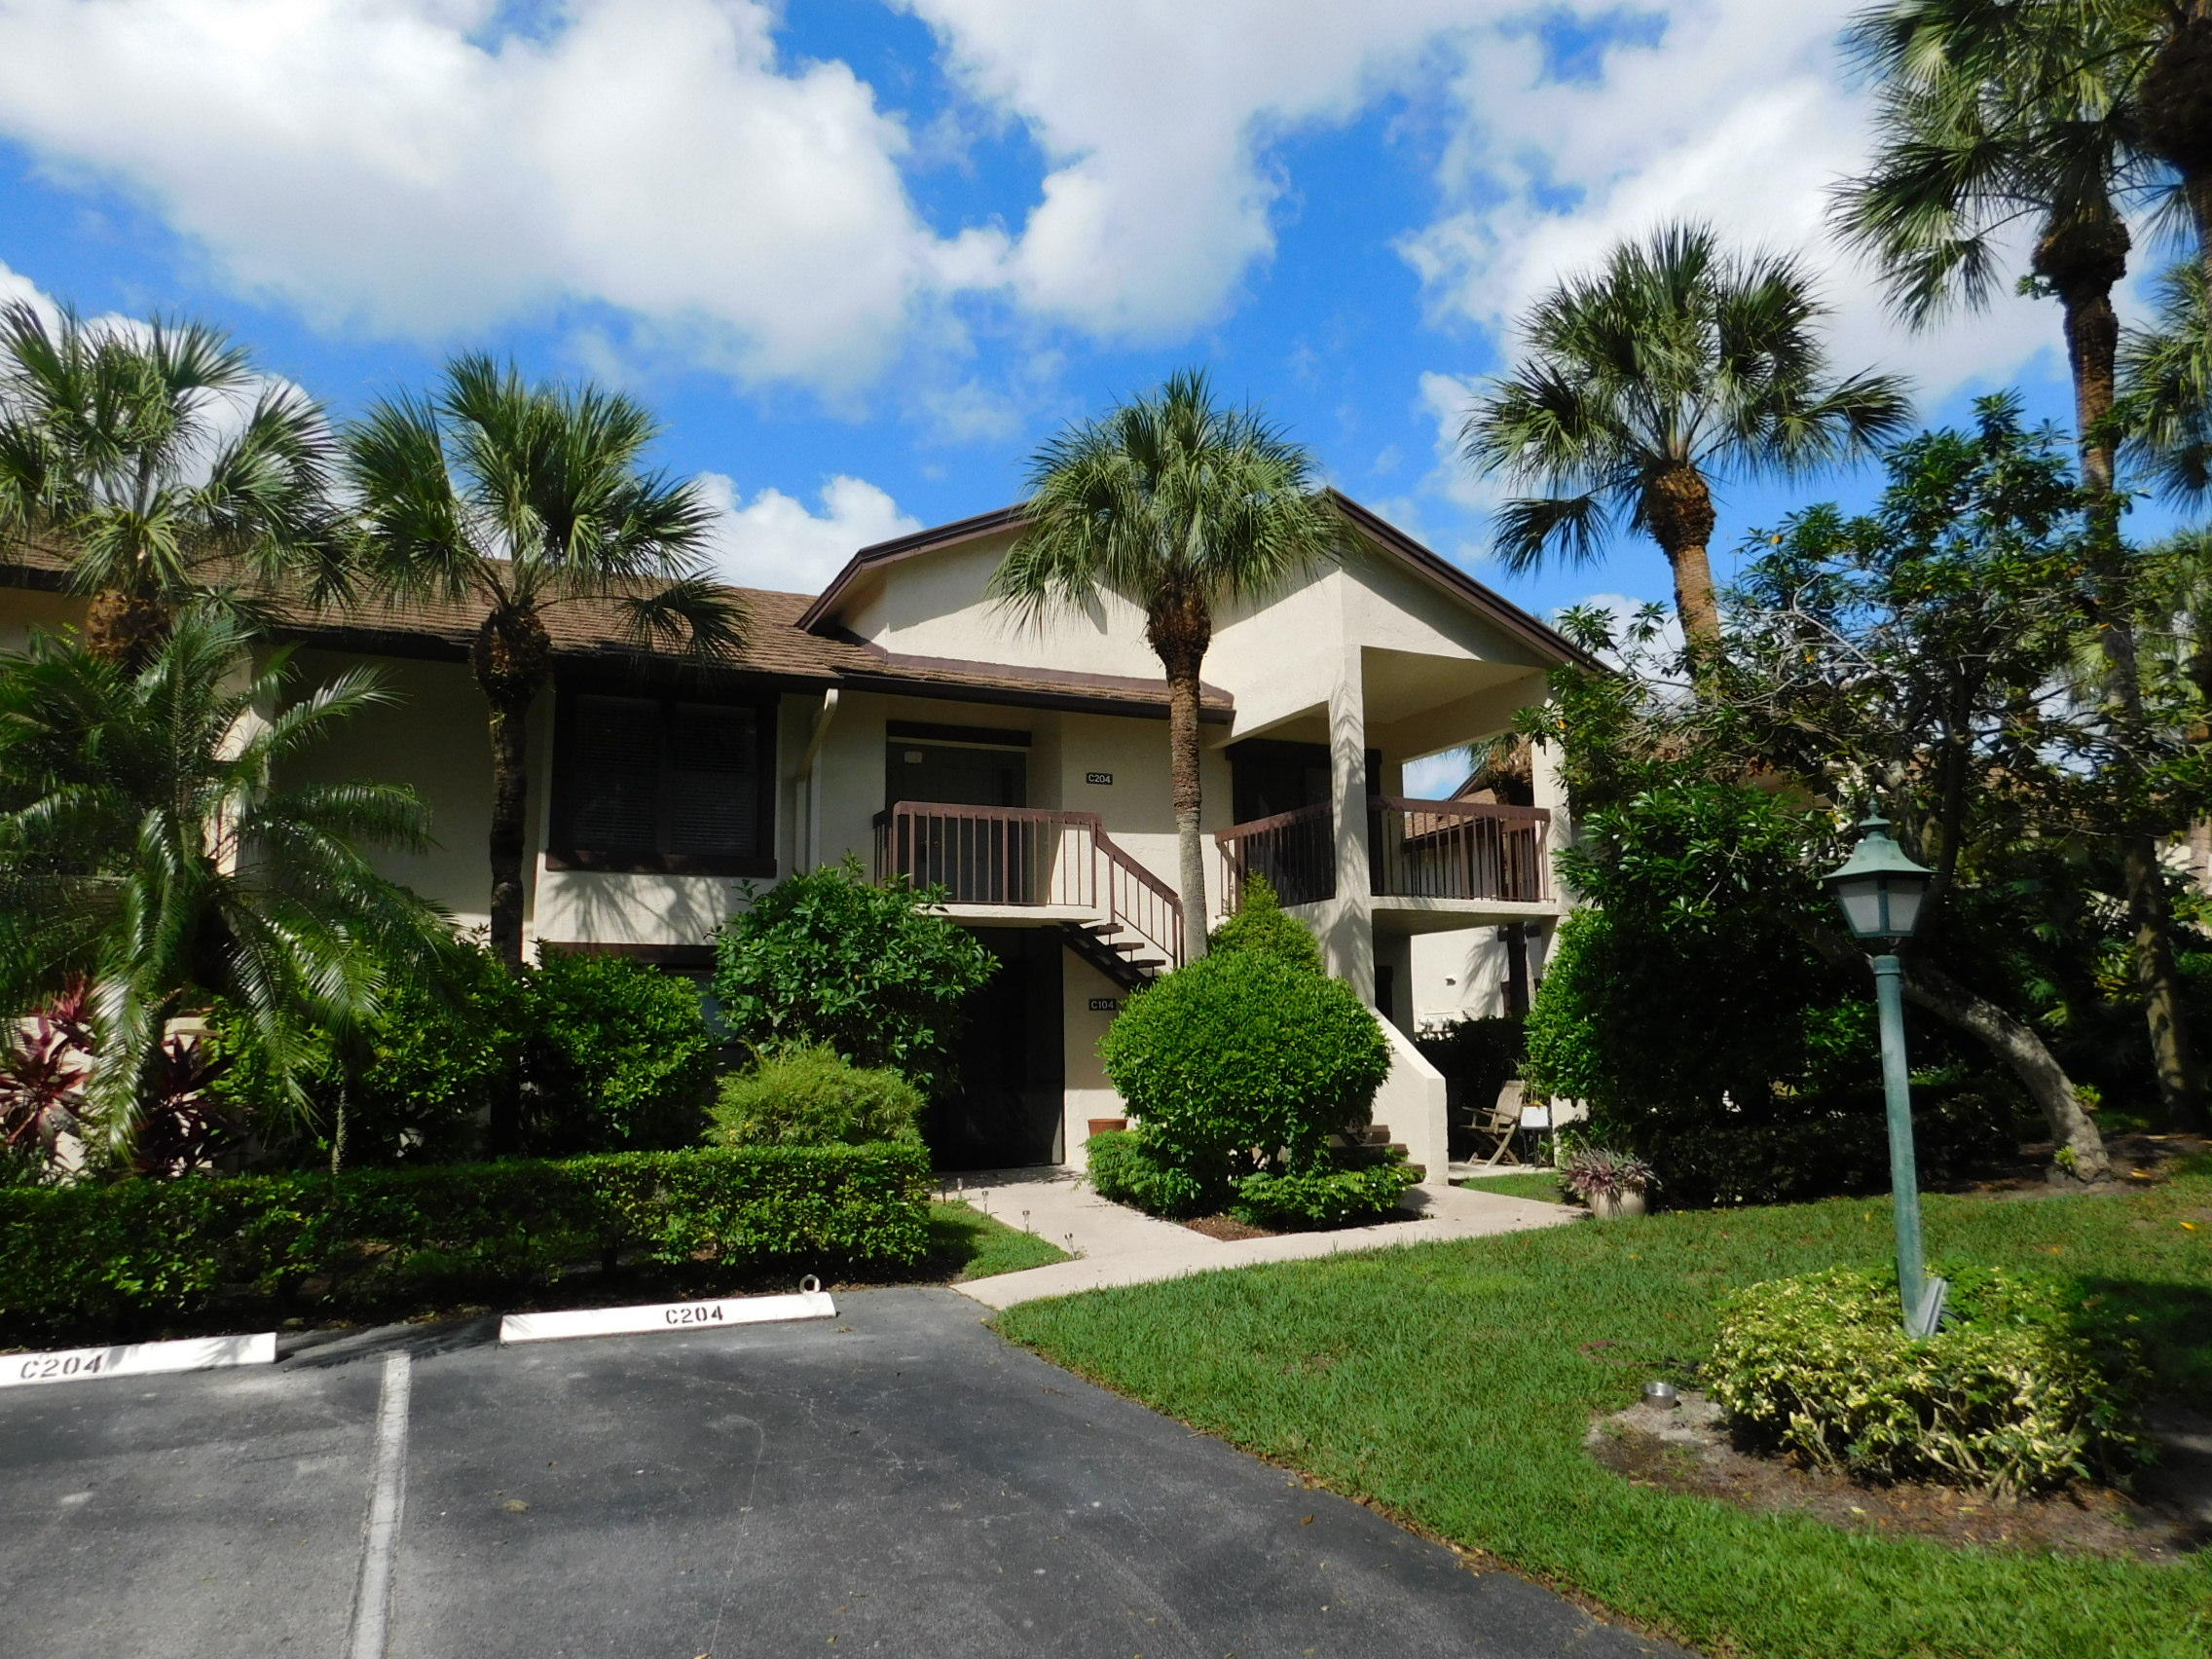 Located in gated Palm Beach Polo and Country Club, this three bedroom, three full bath unit has three private terraces. Second floor unit (no elevator) overlooking green space, some updated appliances, new roof in 2017. Quick close in time for upcoming season.